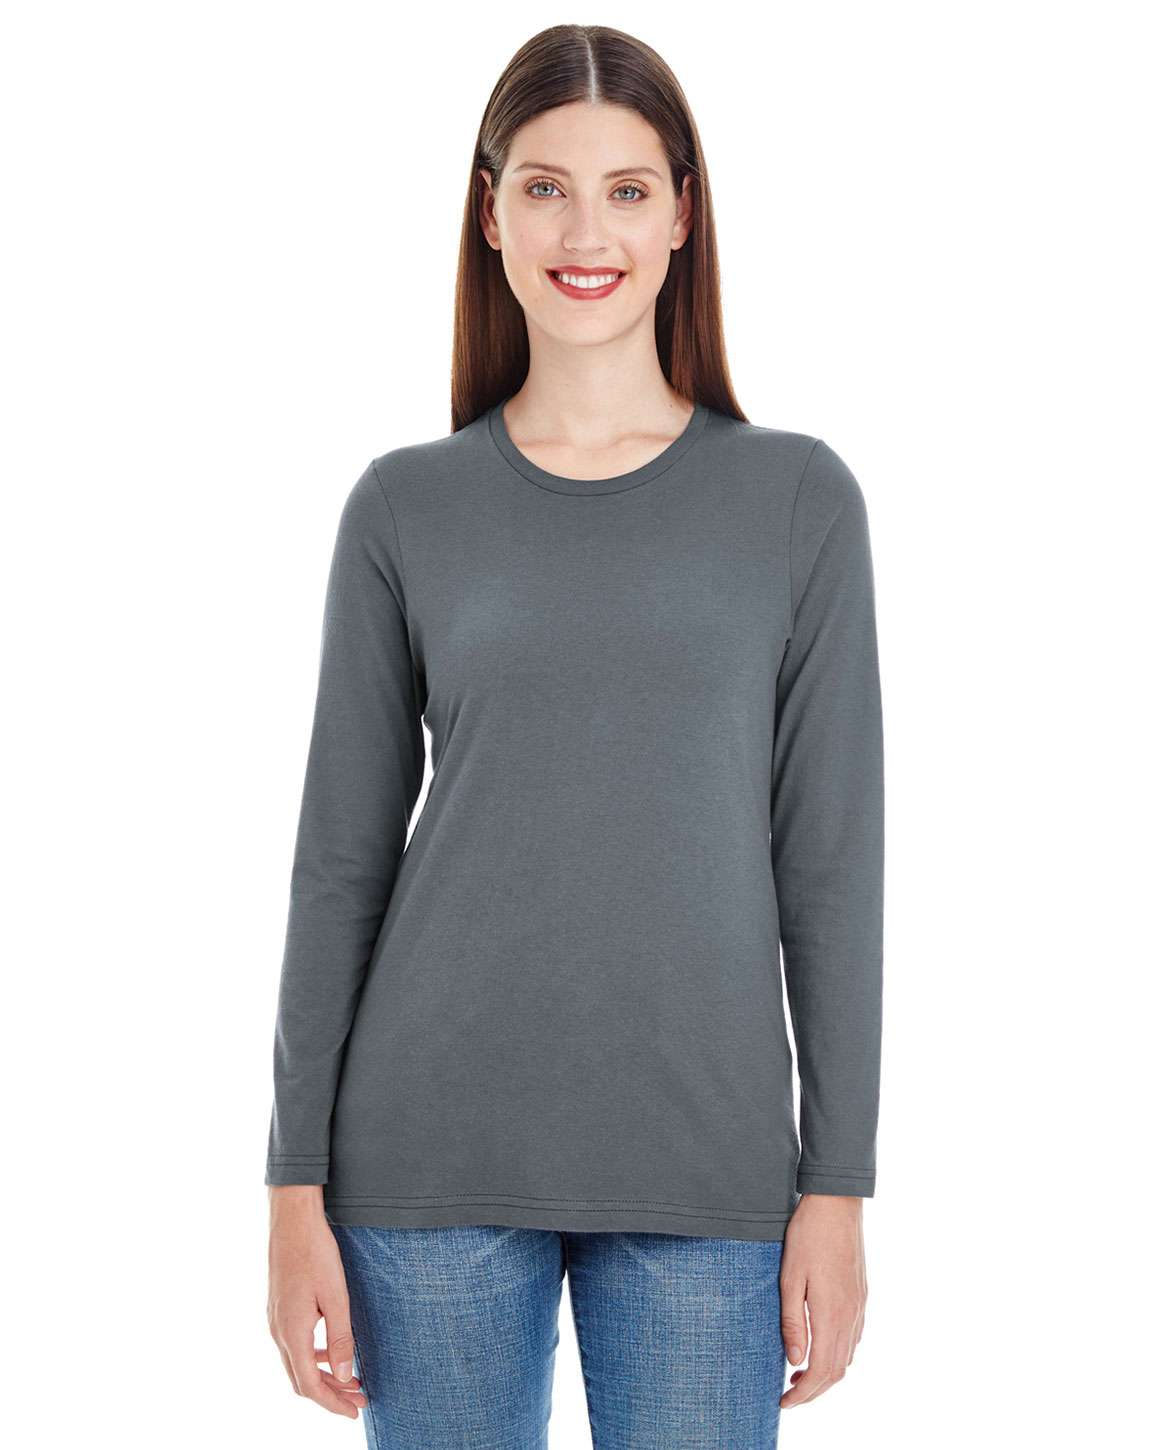 American Apparel 23337W Ladies Fine Jersey Classic Long-Sleeve T-Shirt